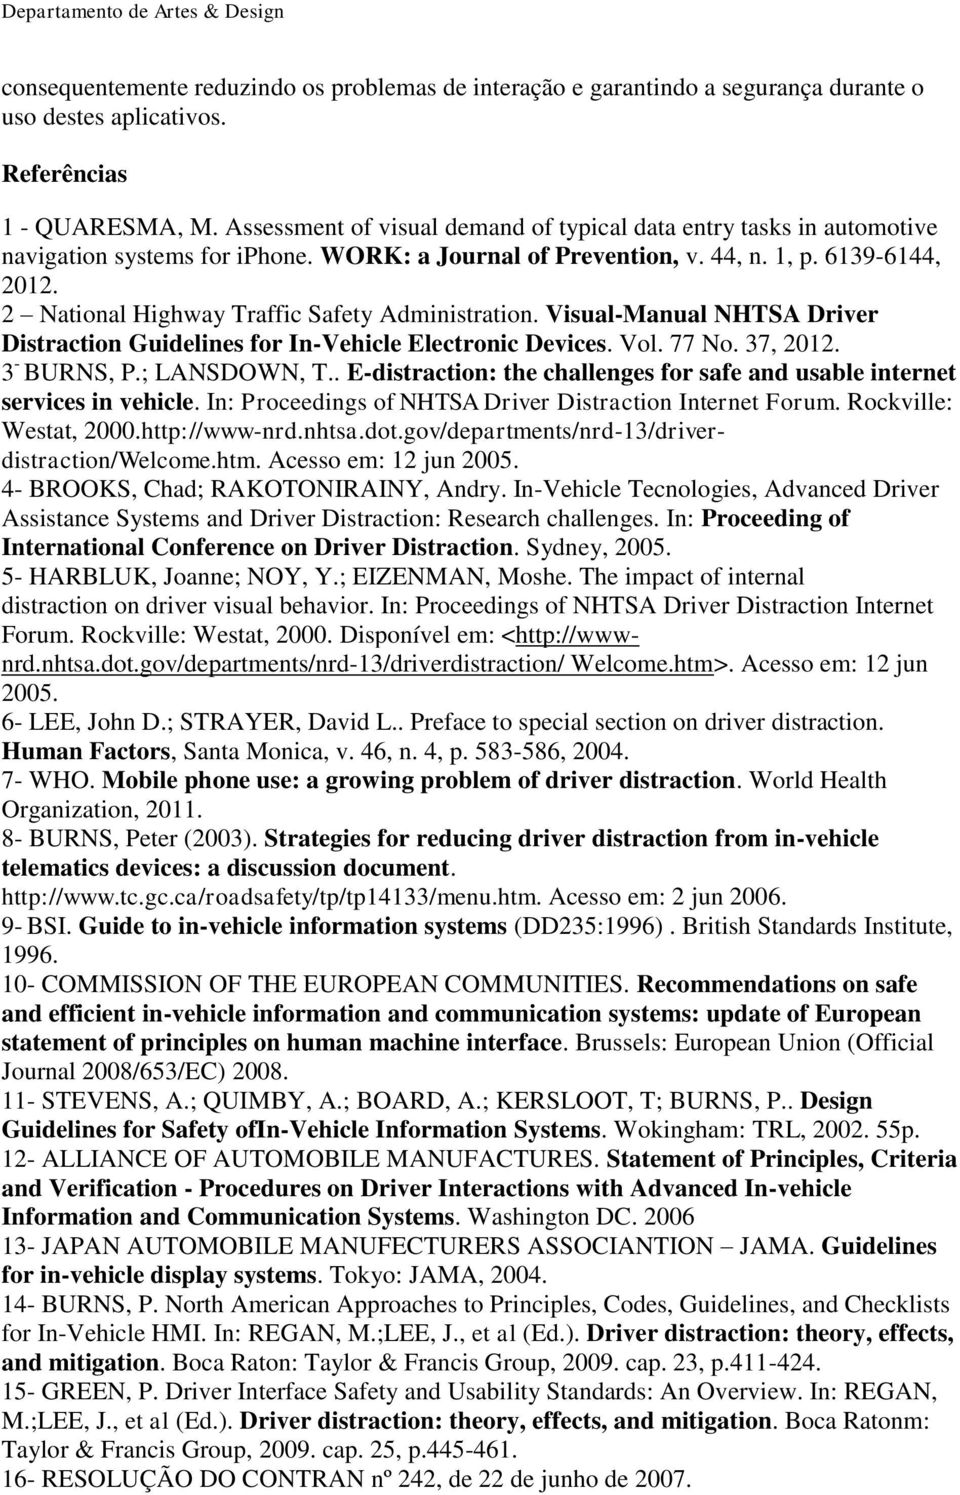 2 National Highway Traffic Safety Administration. Visual-Manual NHTSA Driver Distraction Guidelines for In-Vehicle Electronic Devices. Vol. 77 No. 37, 2012. 3 - BURNS, P.; LANSDOWN, T.